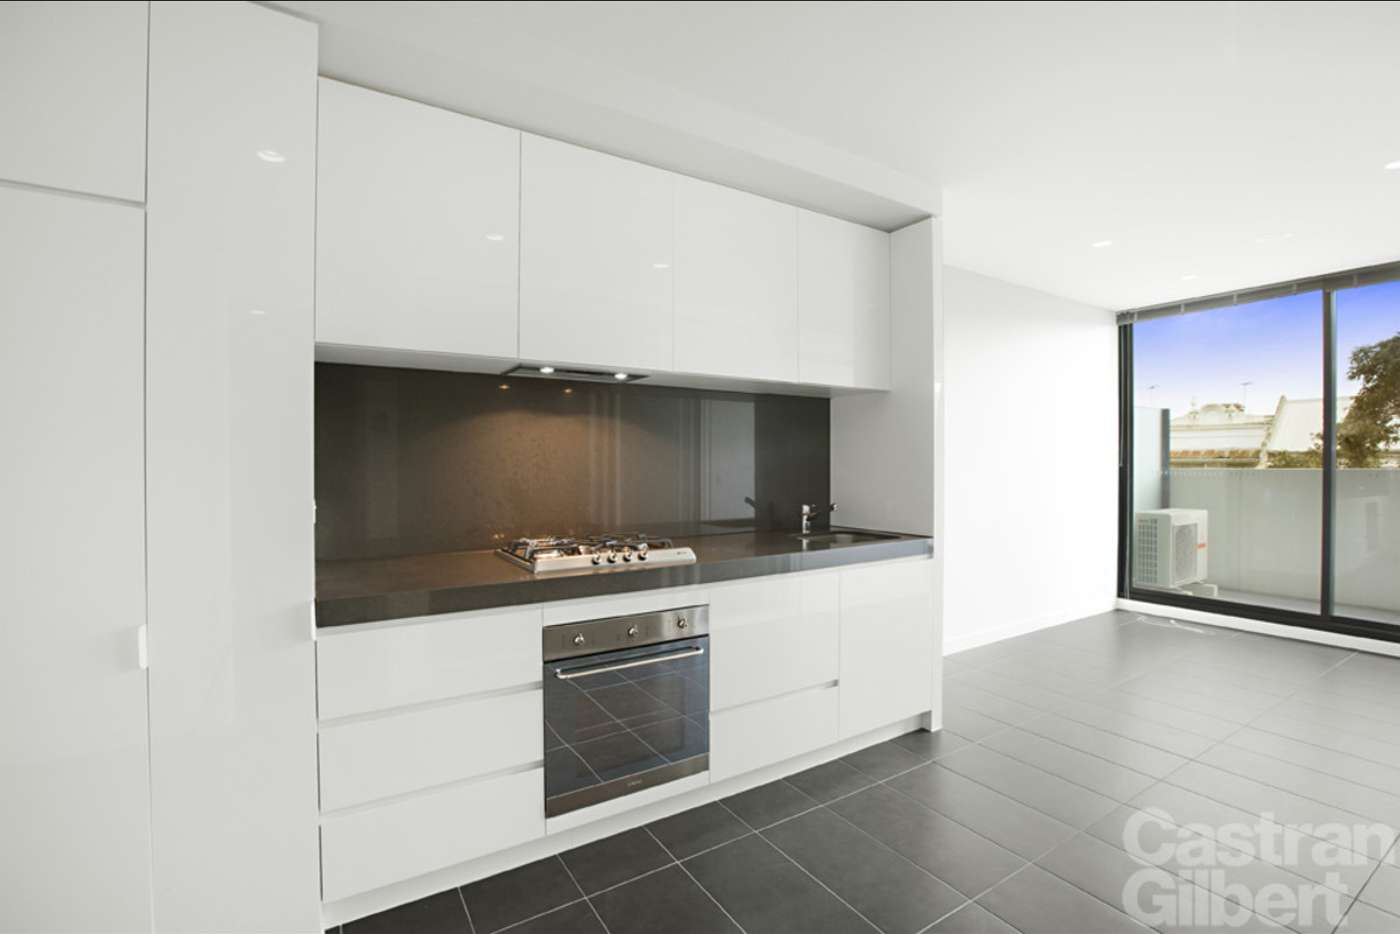 Main view of Homely apartment listing, 201/141 - 149 Roden Street, West Melbourne VIC 3003